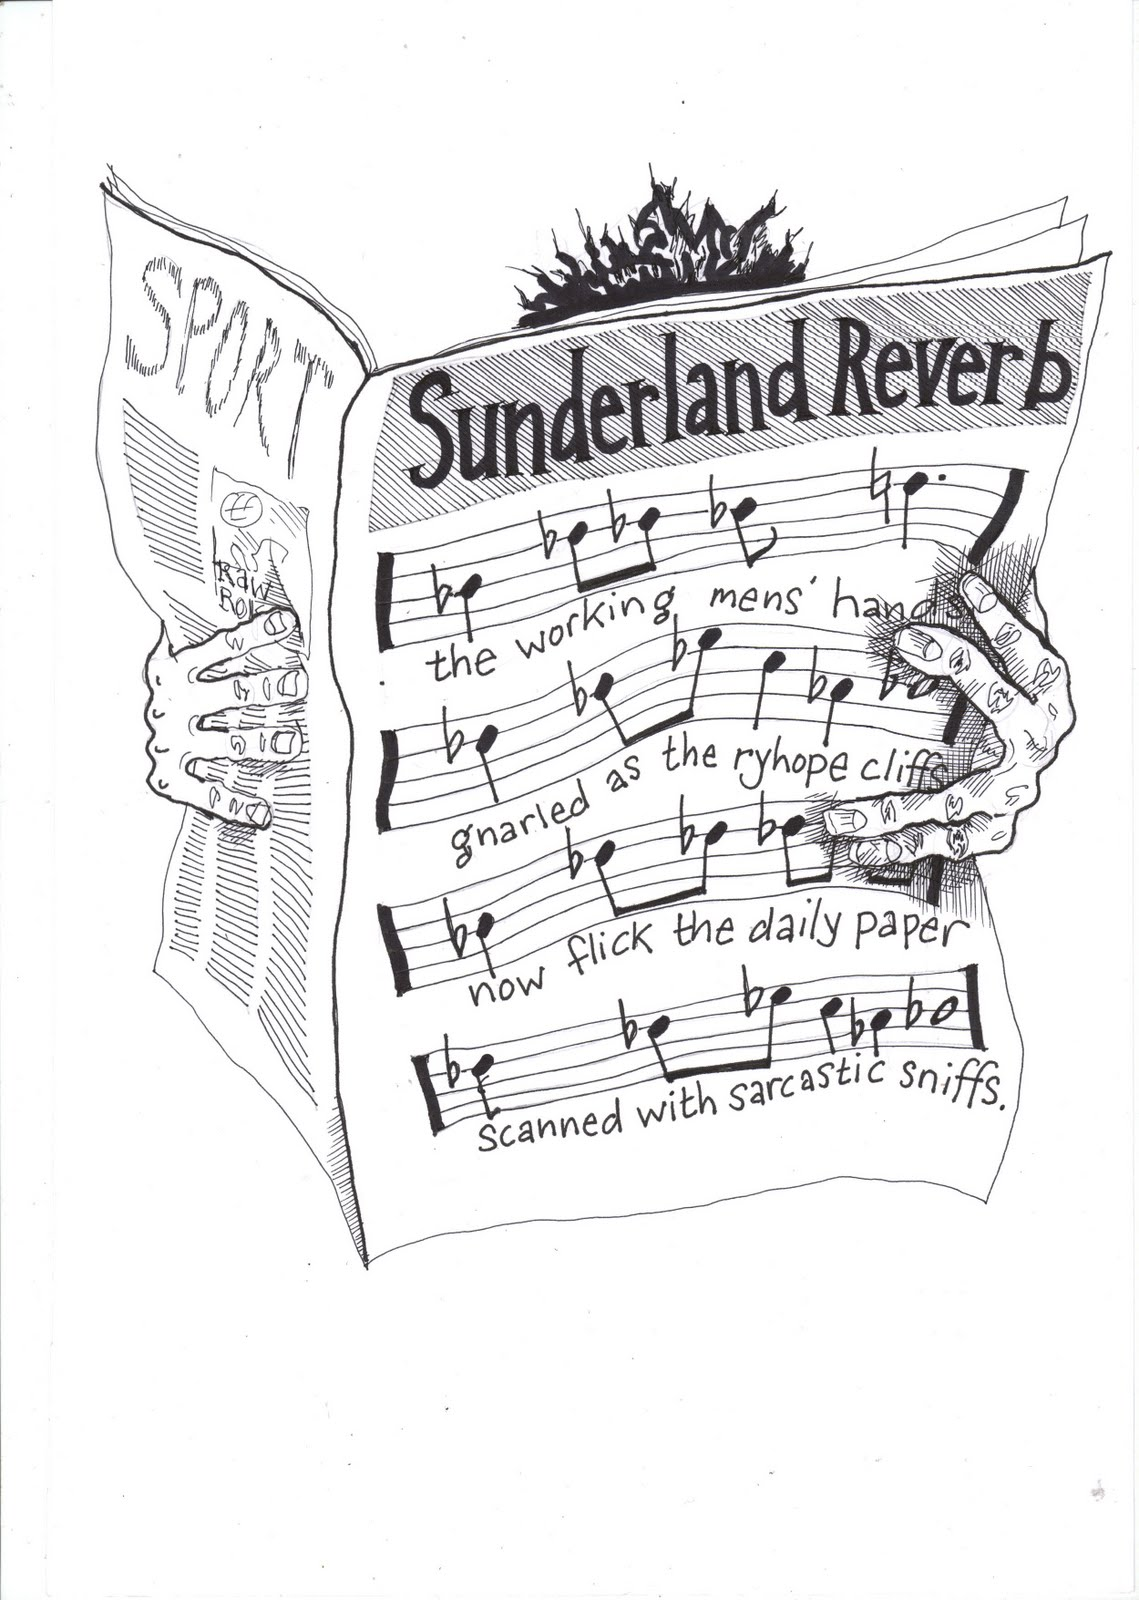 helen mccookerybook july 2011 Holy Grail sing a song of sunderland